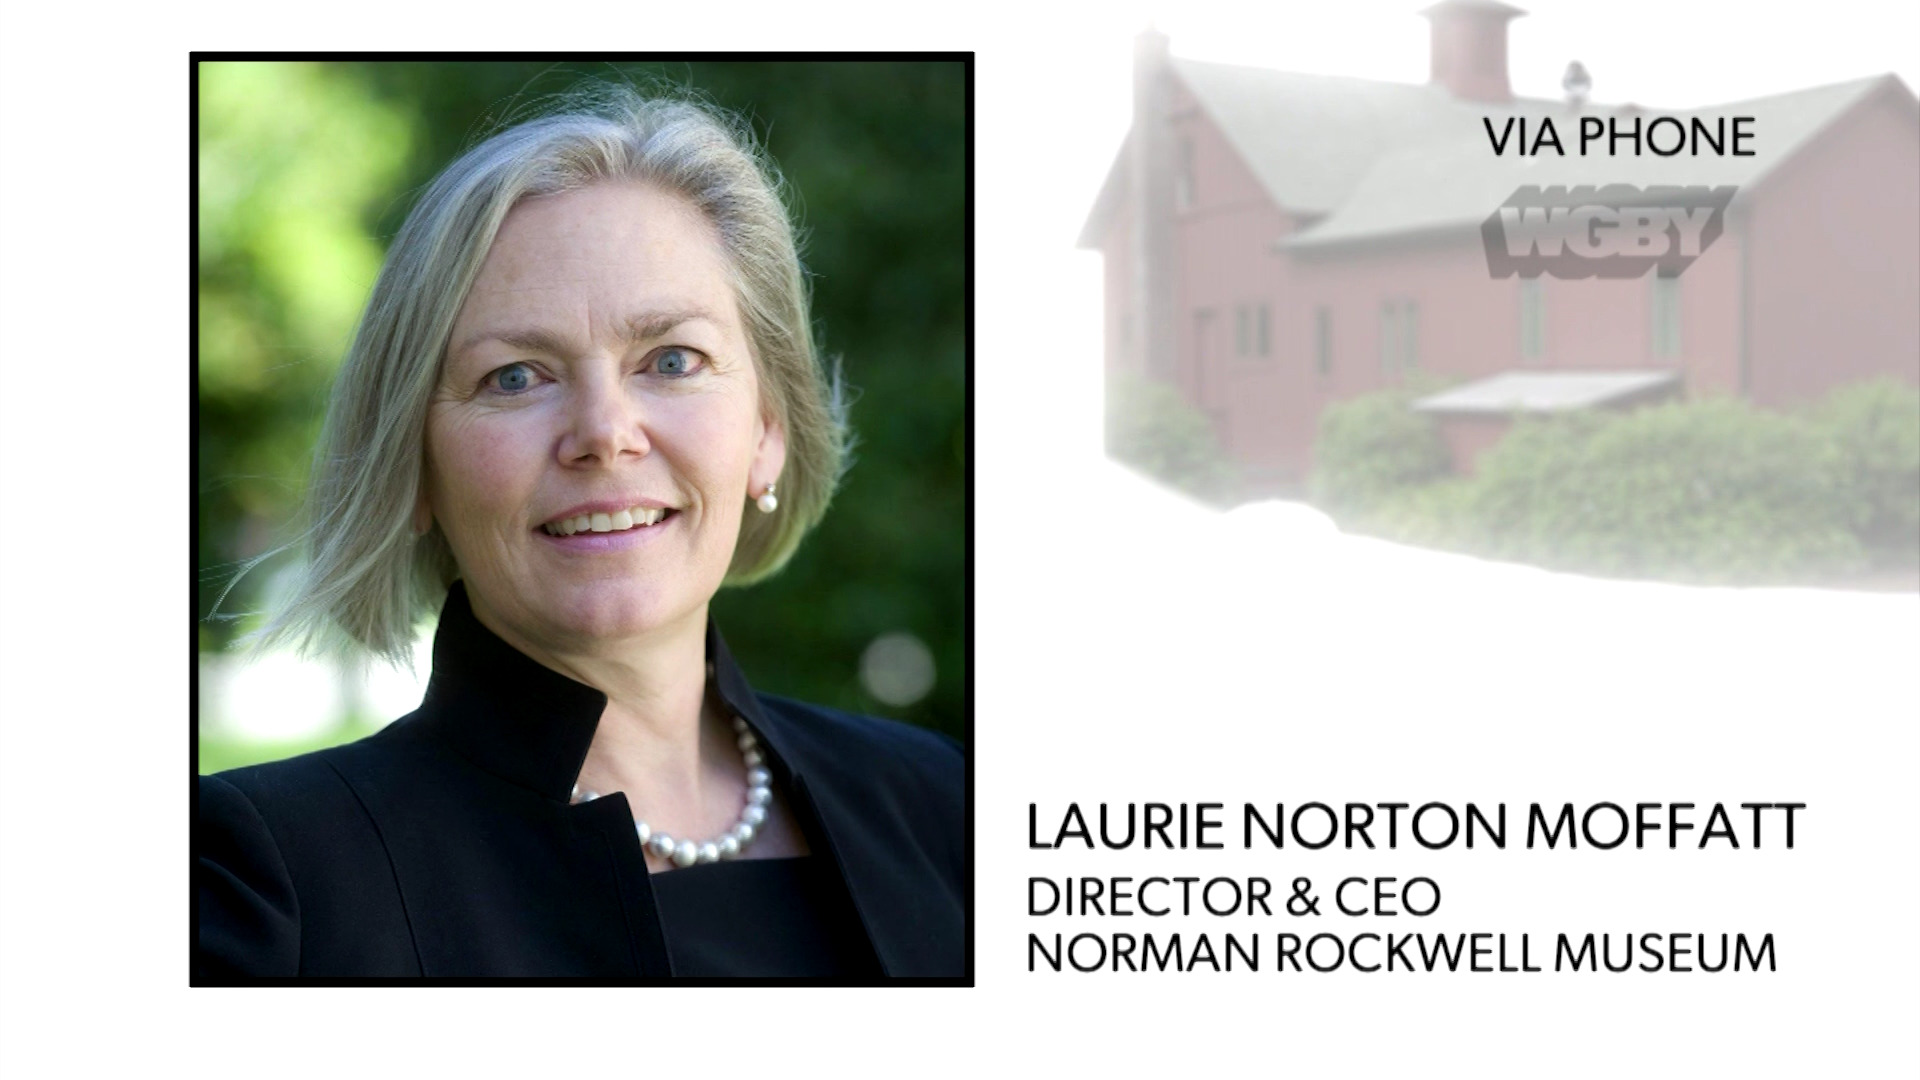 WATCH: Laurie Norton Moffatt shares how the Norman Rockwell Museum is adapting to surivive and provide services in the face of the coronavirus outbreak.